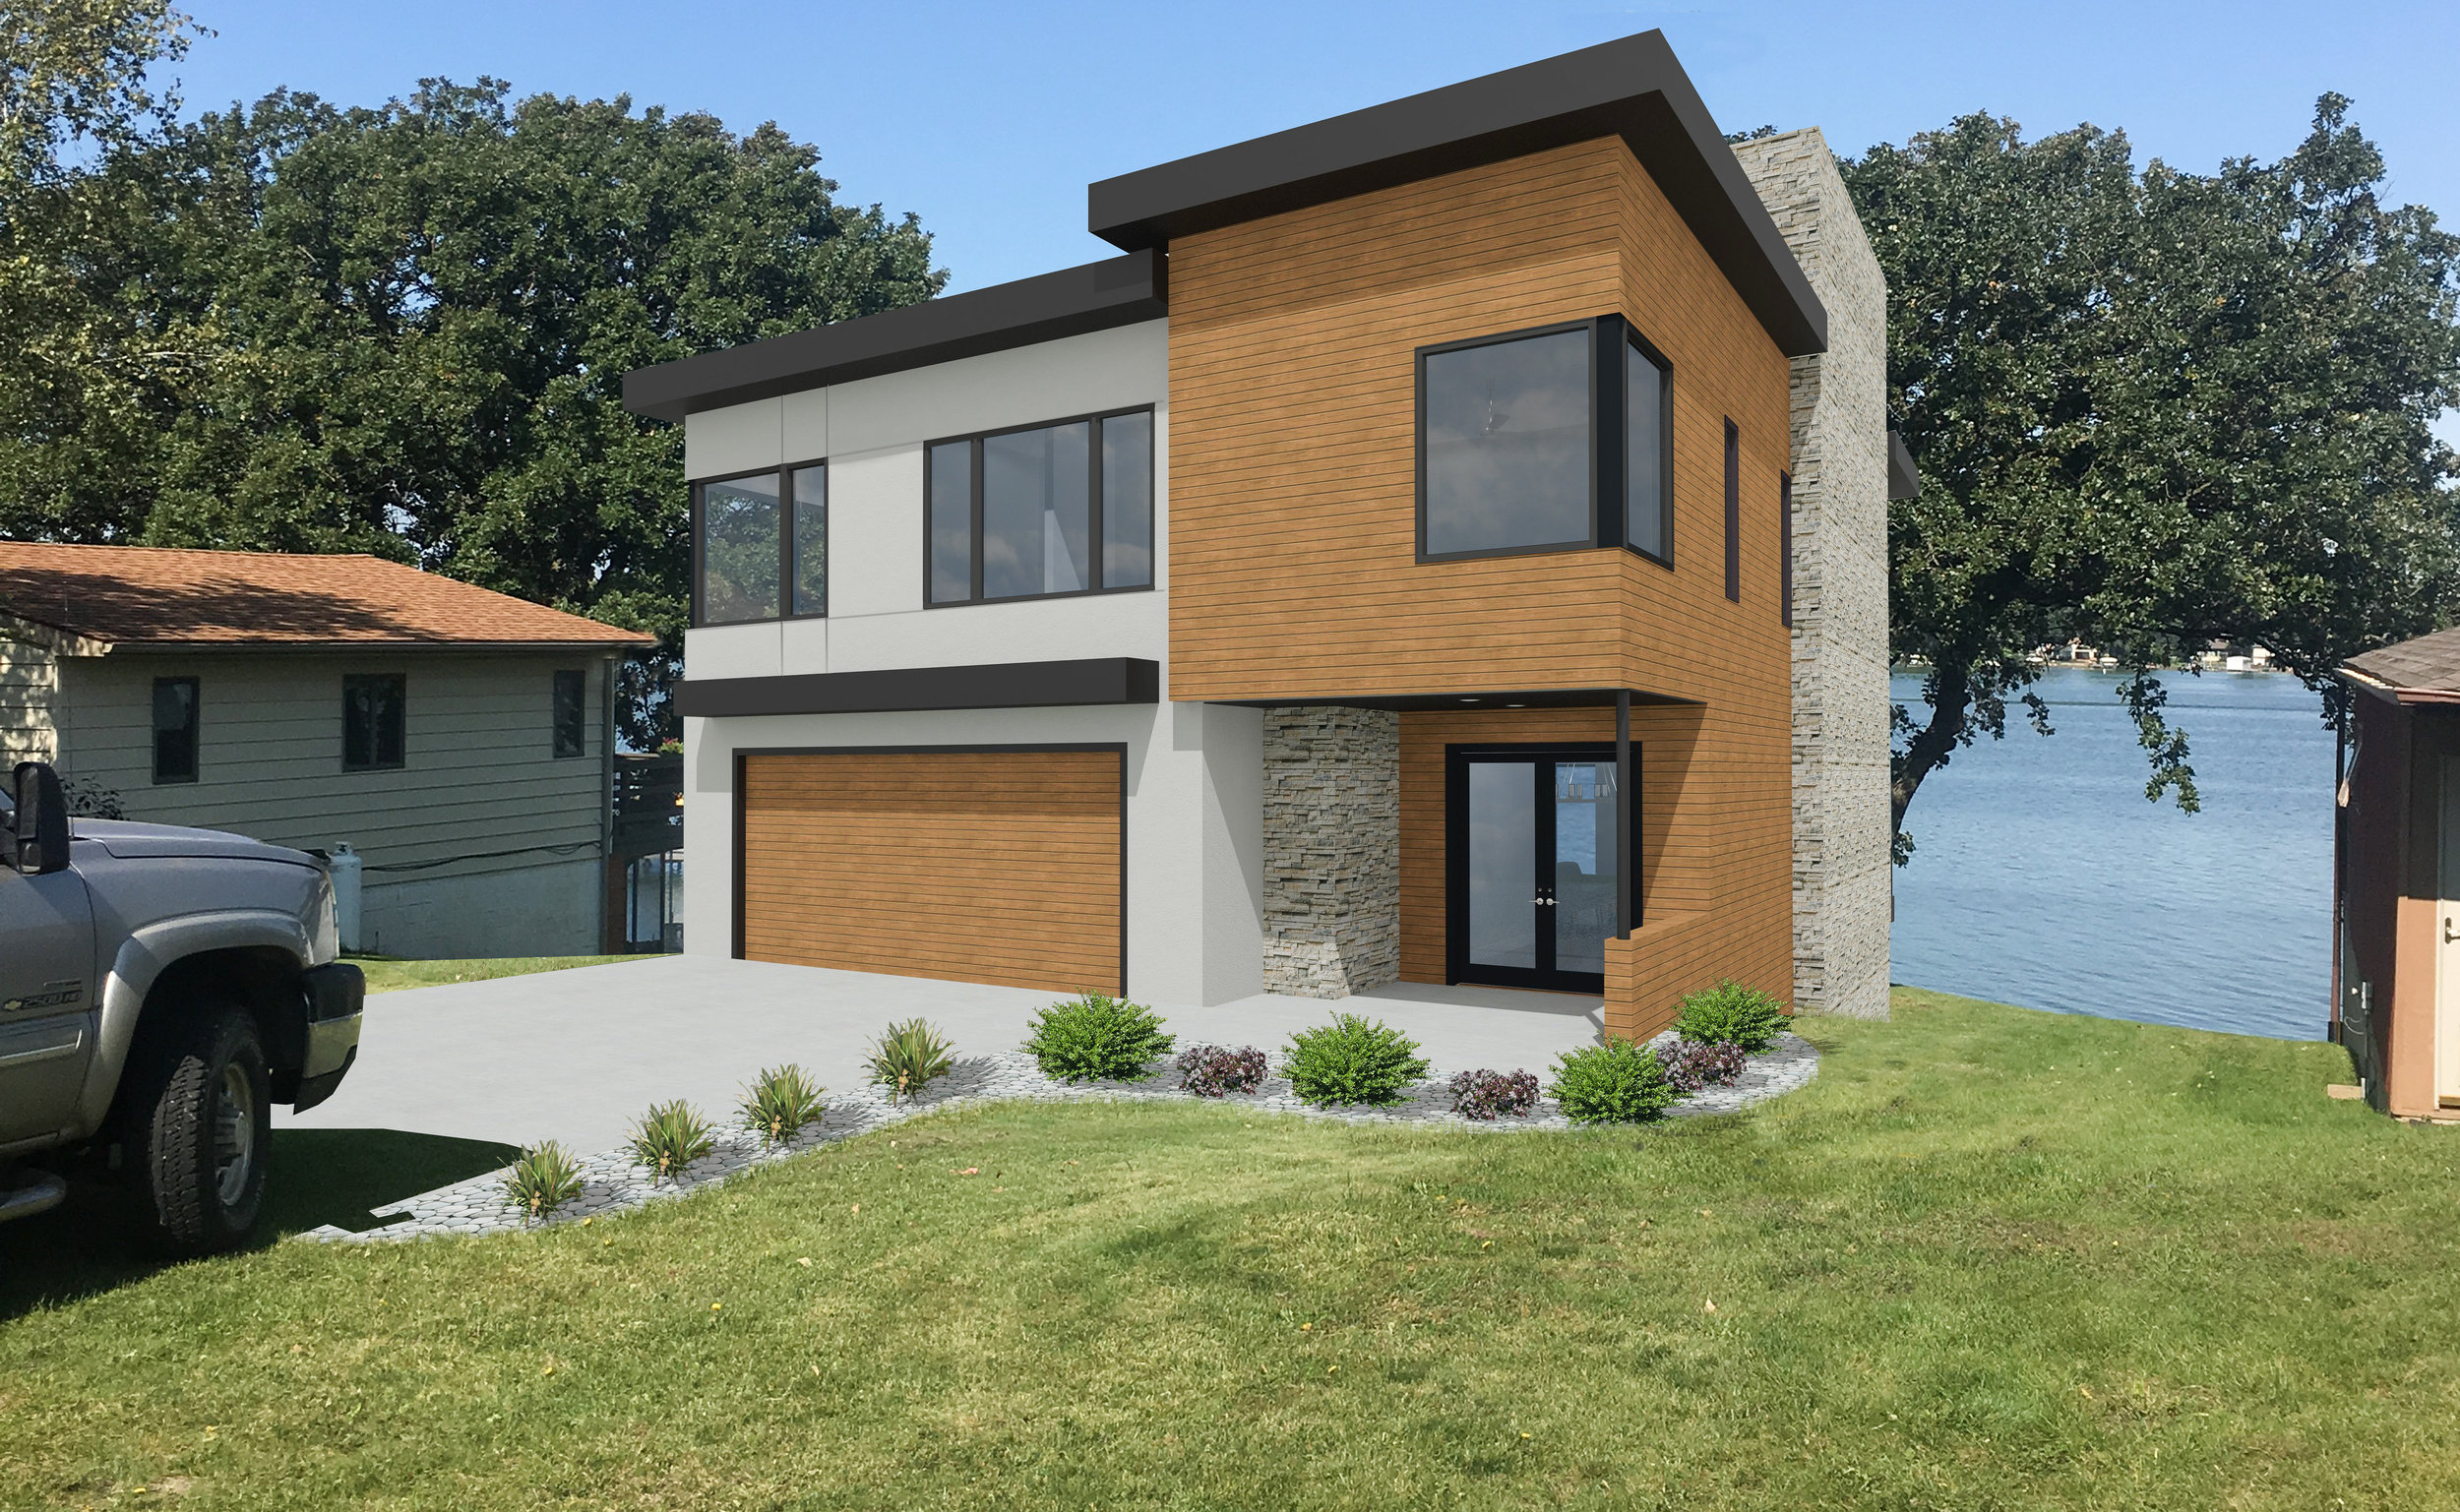 190430 Thruston front render.JPG